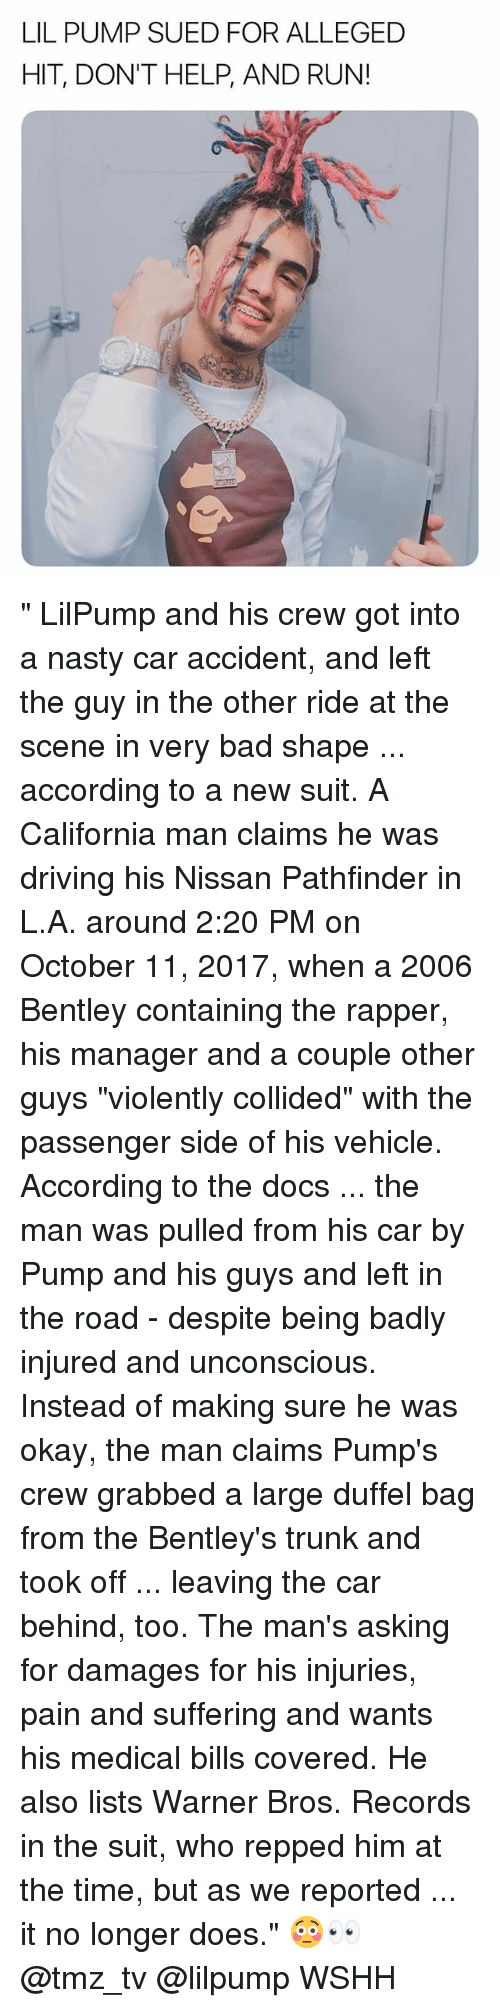 """Bad, Driving, and Memes: LIL PUMP SUED FOR ALLEGED  HIT, DON'T HELP, AND RUN! """" LilPump and his crew got into a nasty car accident, and left the guy in the other ride at the scene in very bad shape ... according to a new suit. A California man claims he was driving his Nissan Pathfinder in L.A. around 2:20 PM on October 11, 2017, when a 2006 Bentley containing the rapper, his manager and a couple other guys """"violently collided"""" with the passenger side of his vehicle. According to the docs ... the man was pulled from his car by Pump and his guys and left in the road - despite being badly injured and unconscious. Instead of making sure he was okay, the man claims Pump's crew grabbed a large duffel bag from the Bentley's trunk and took off ... leaving the car behind, too. The man's asking for damages for his injuries, pain and suffering and wants his medical bills covered. He also lists Warner Bros. Records in the suit, who repped him at the time, but as we reported ... it no longer does."""" 😳👀 @tmz_tv @lilpump WSHH"""